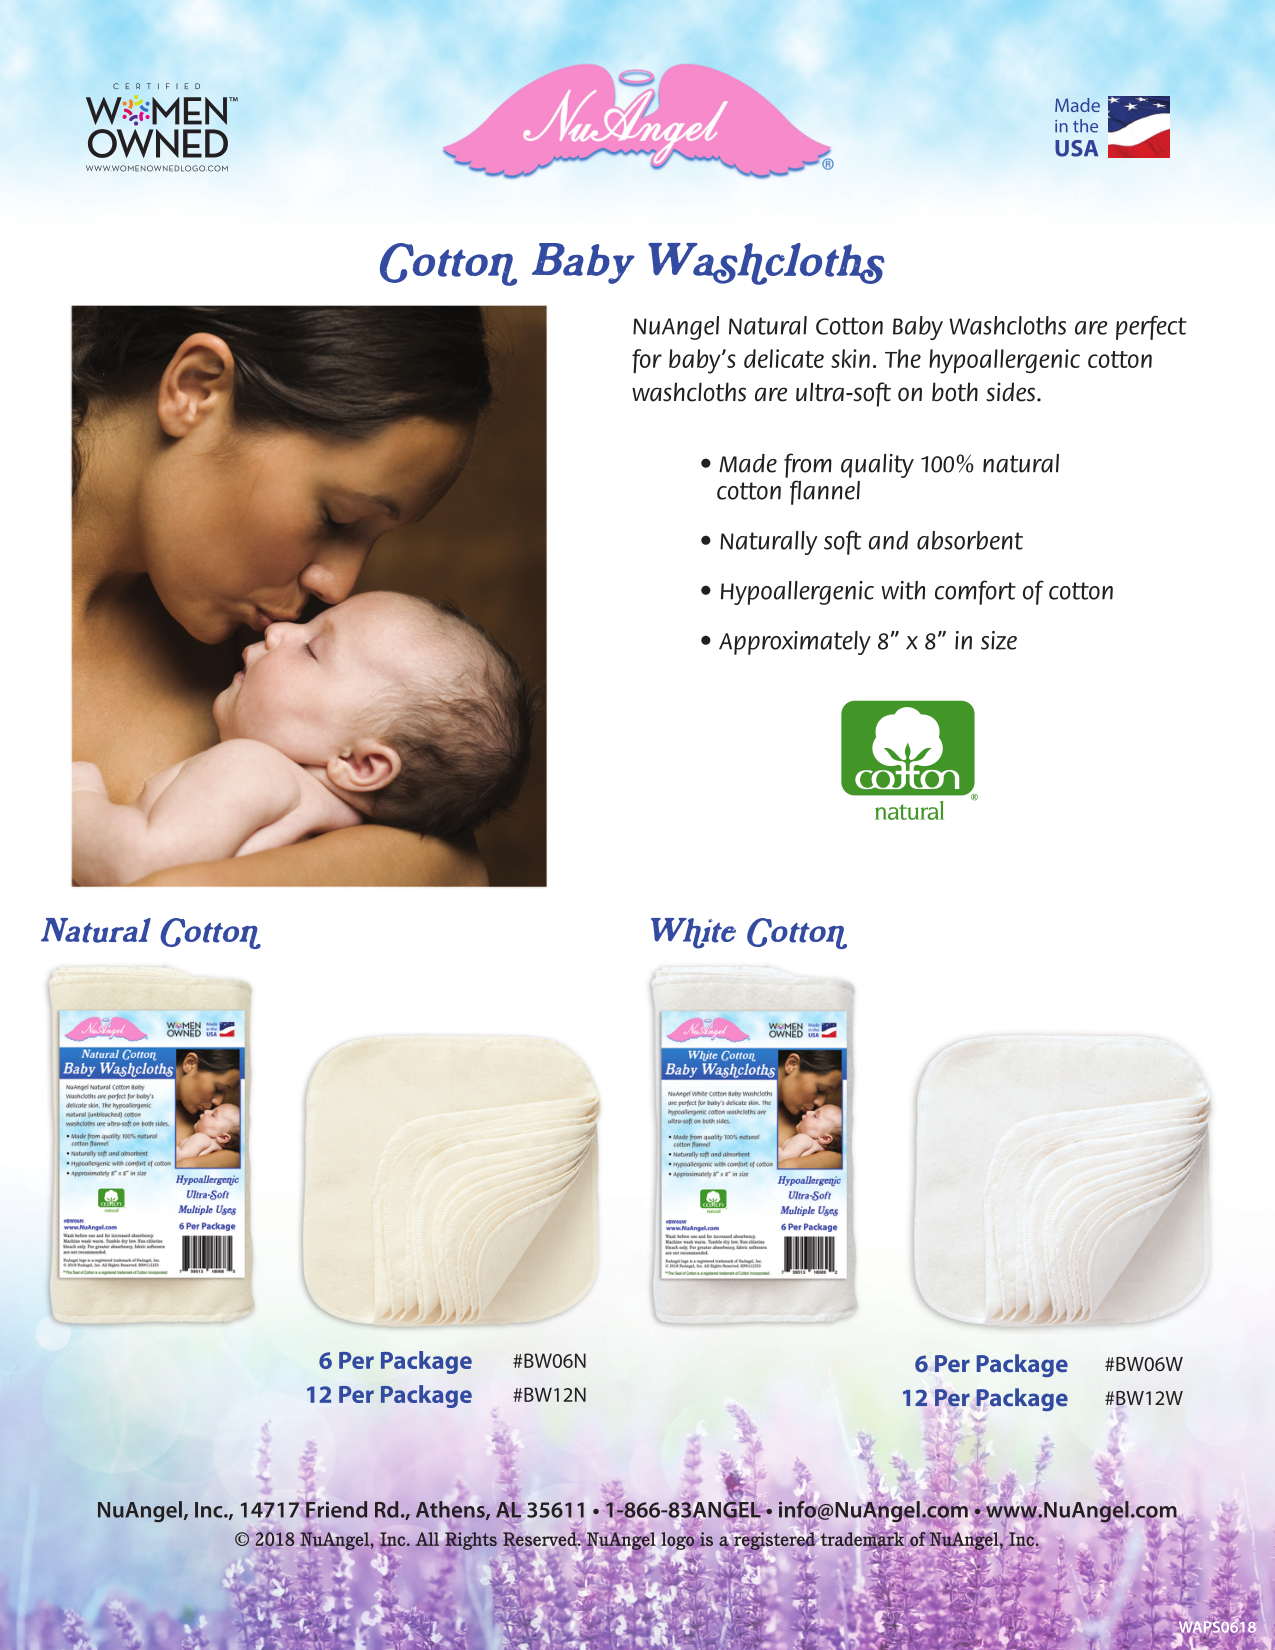 Made in USA baby products: NuAngel cotton baby washcloths